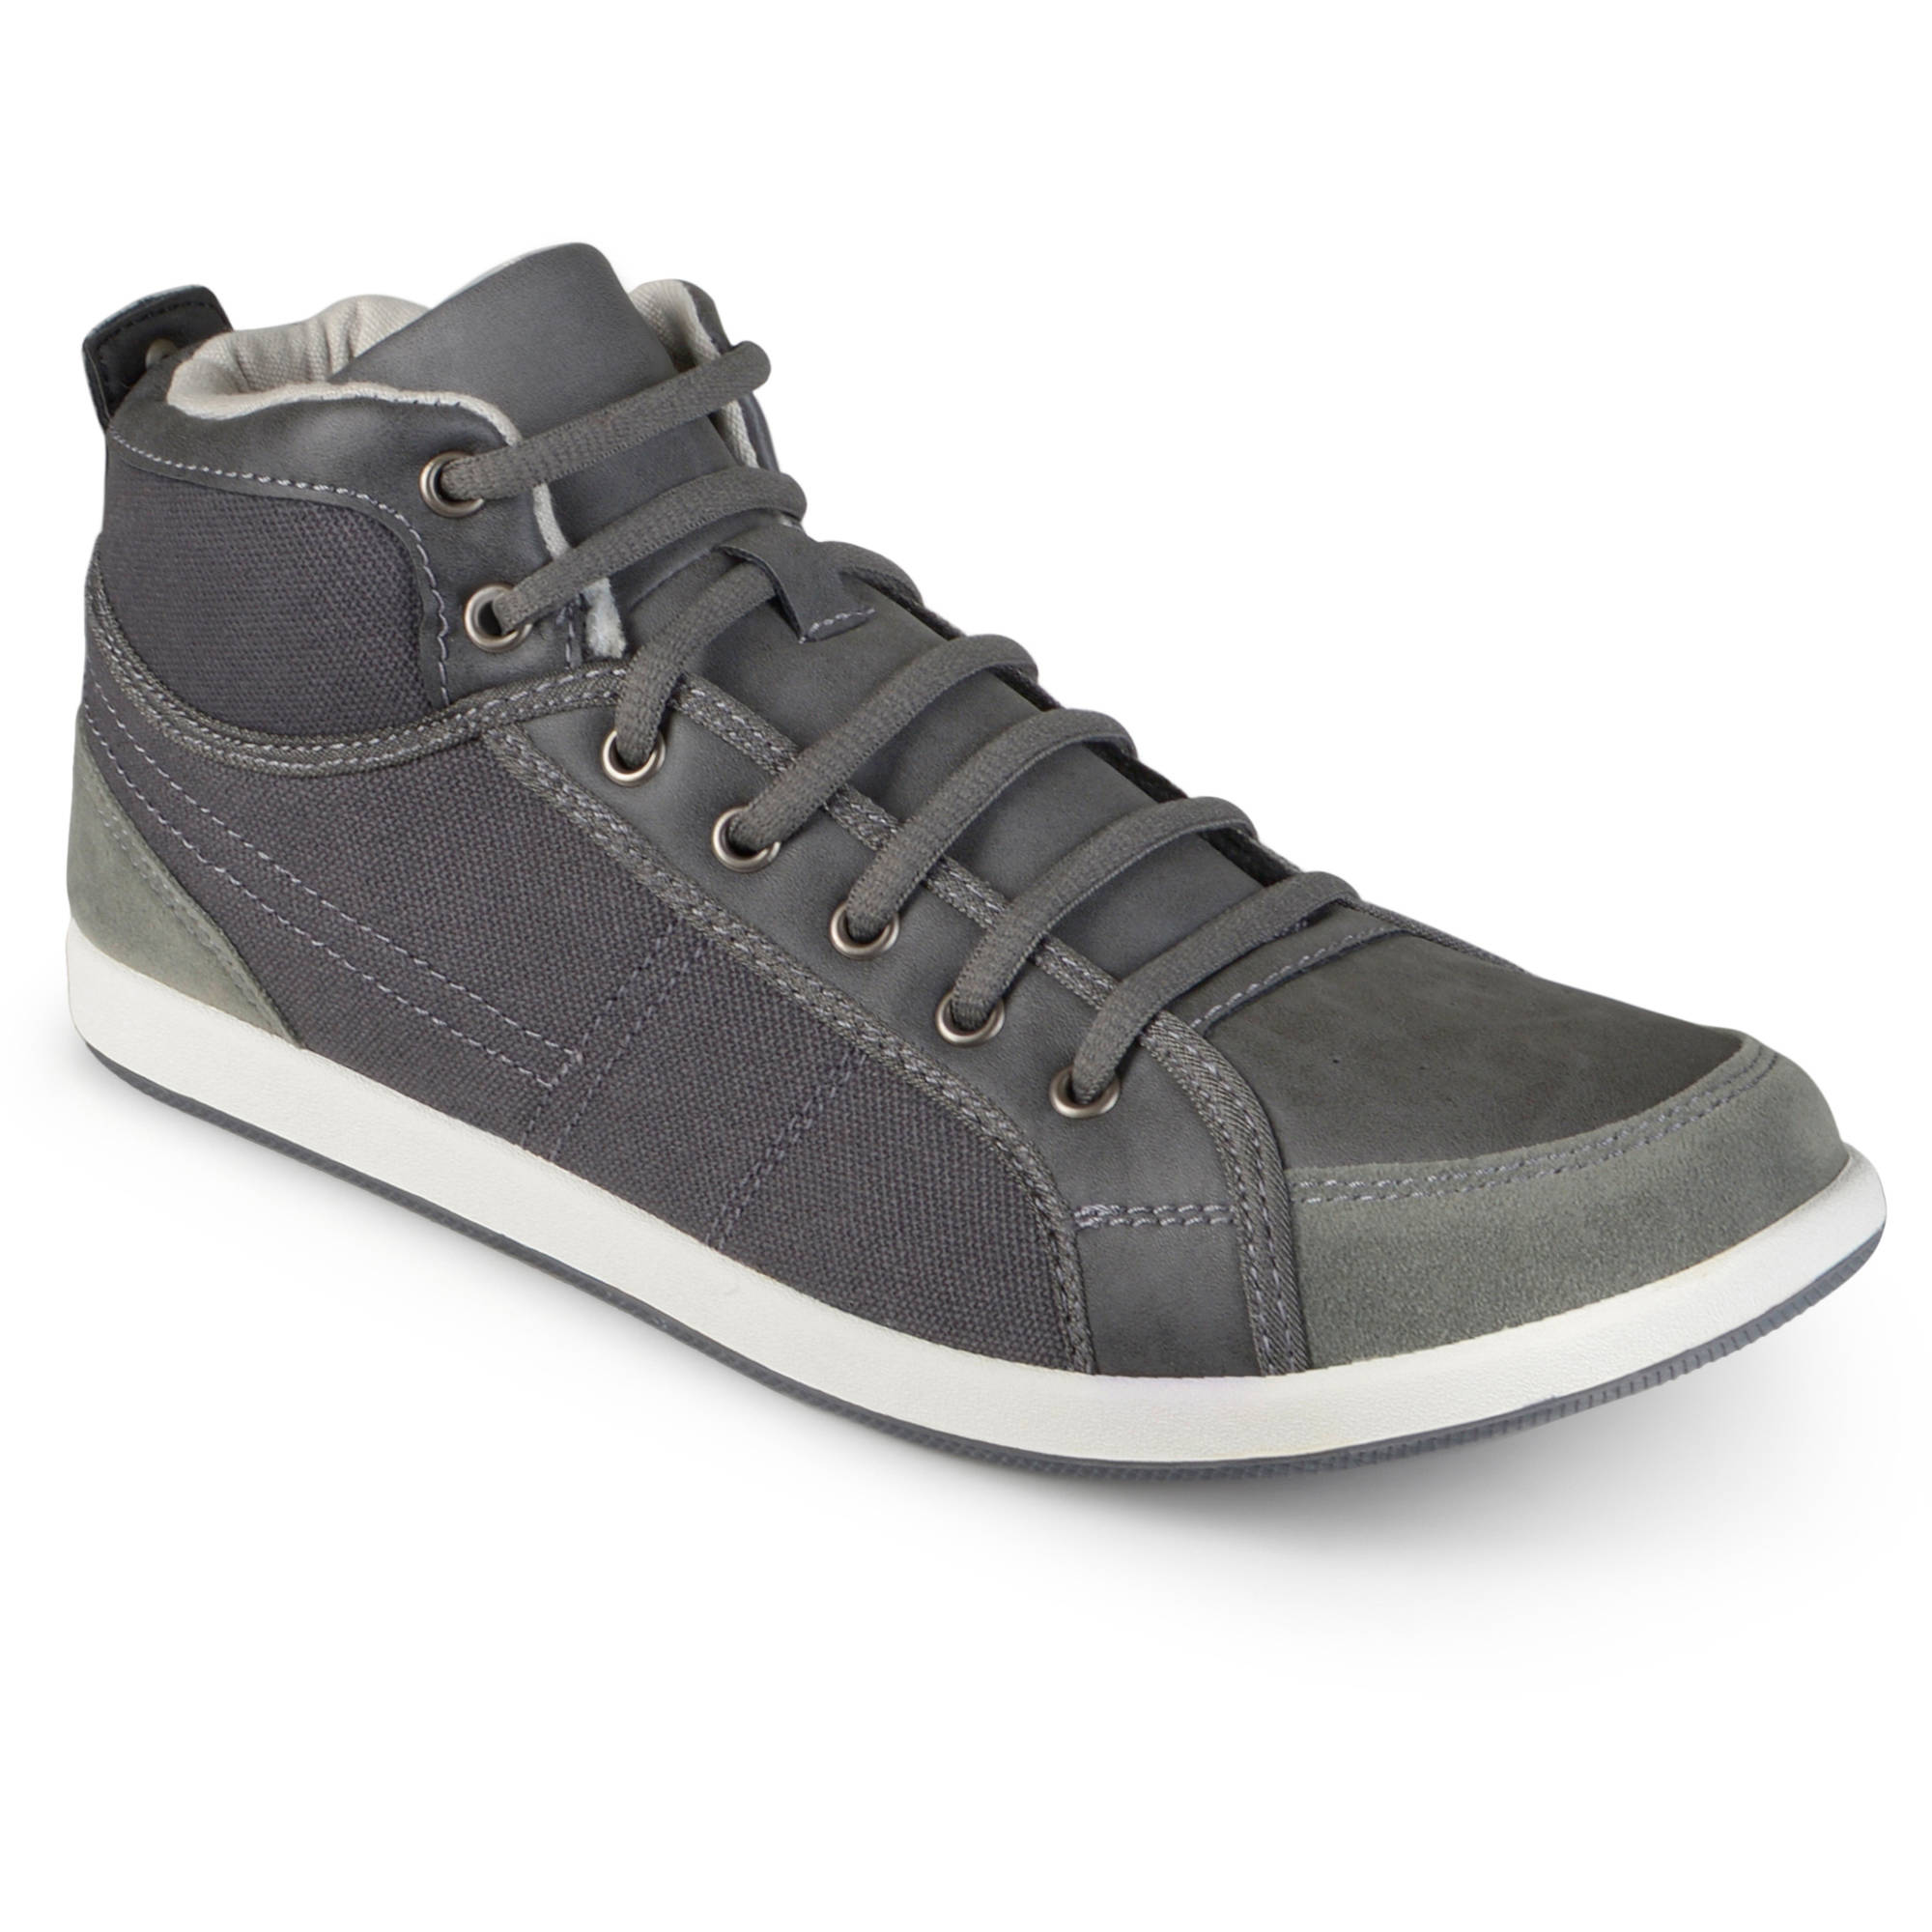 Daxx Mens Classic Casual Lace-up Mid Rise Fashion Sneakers